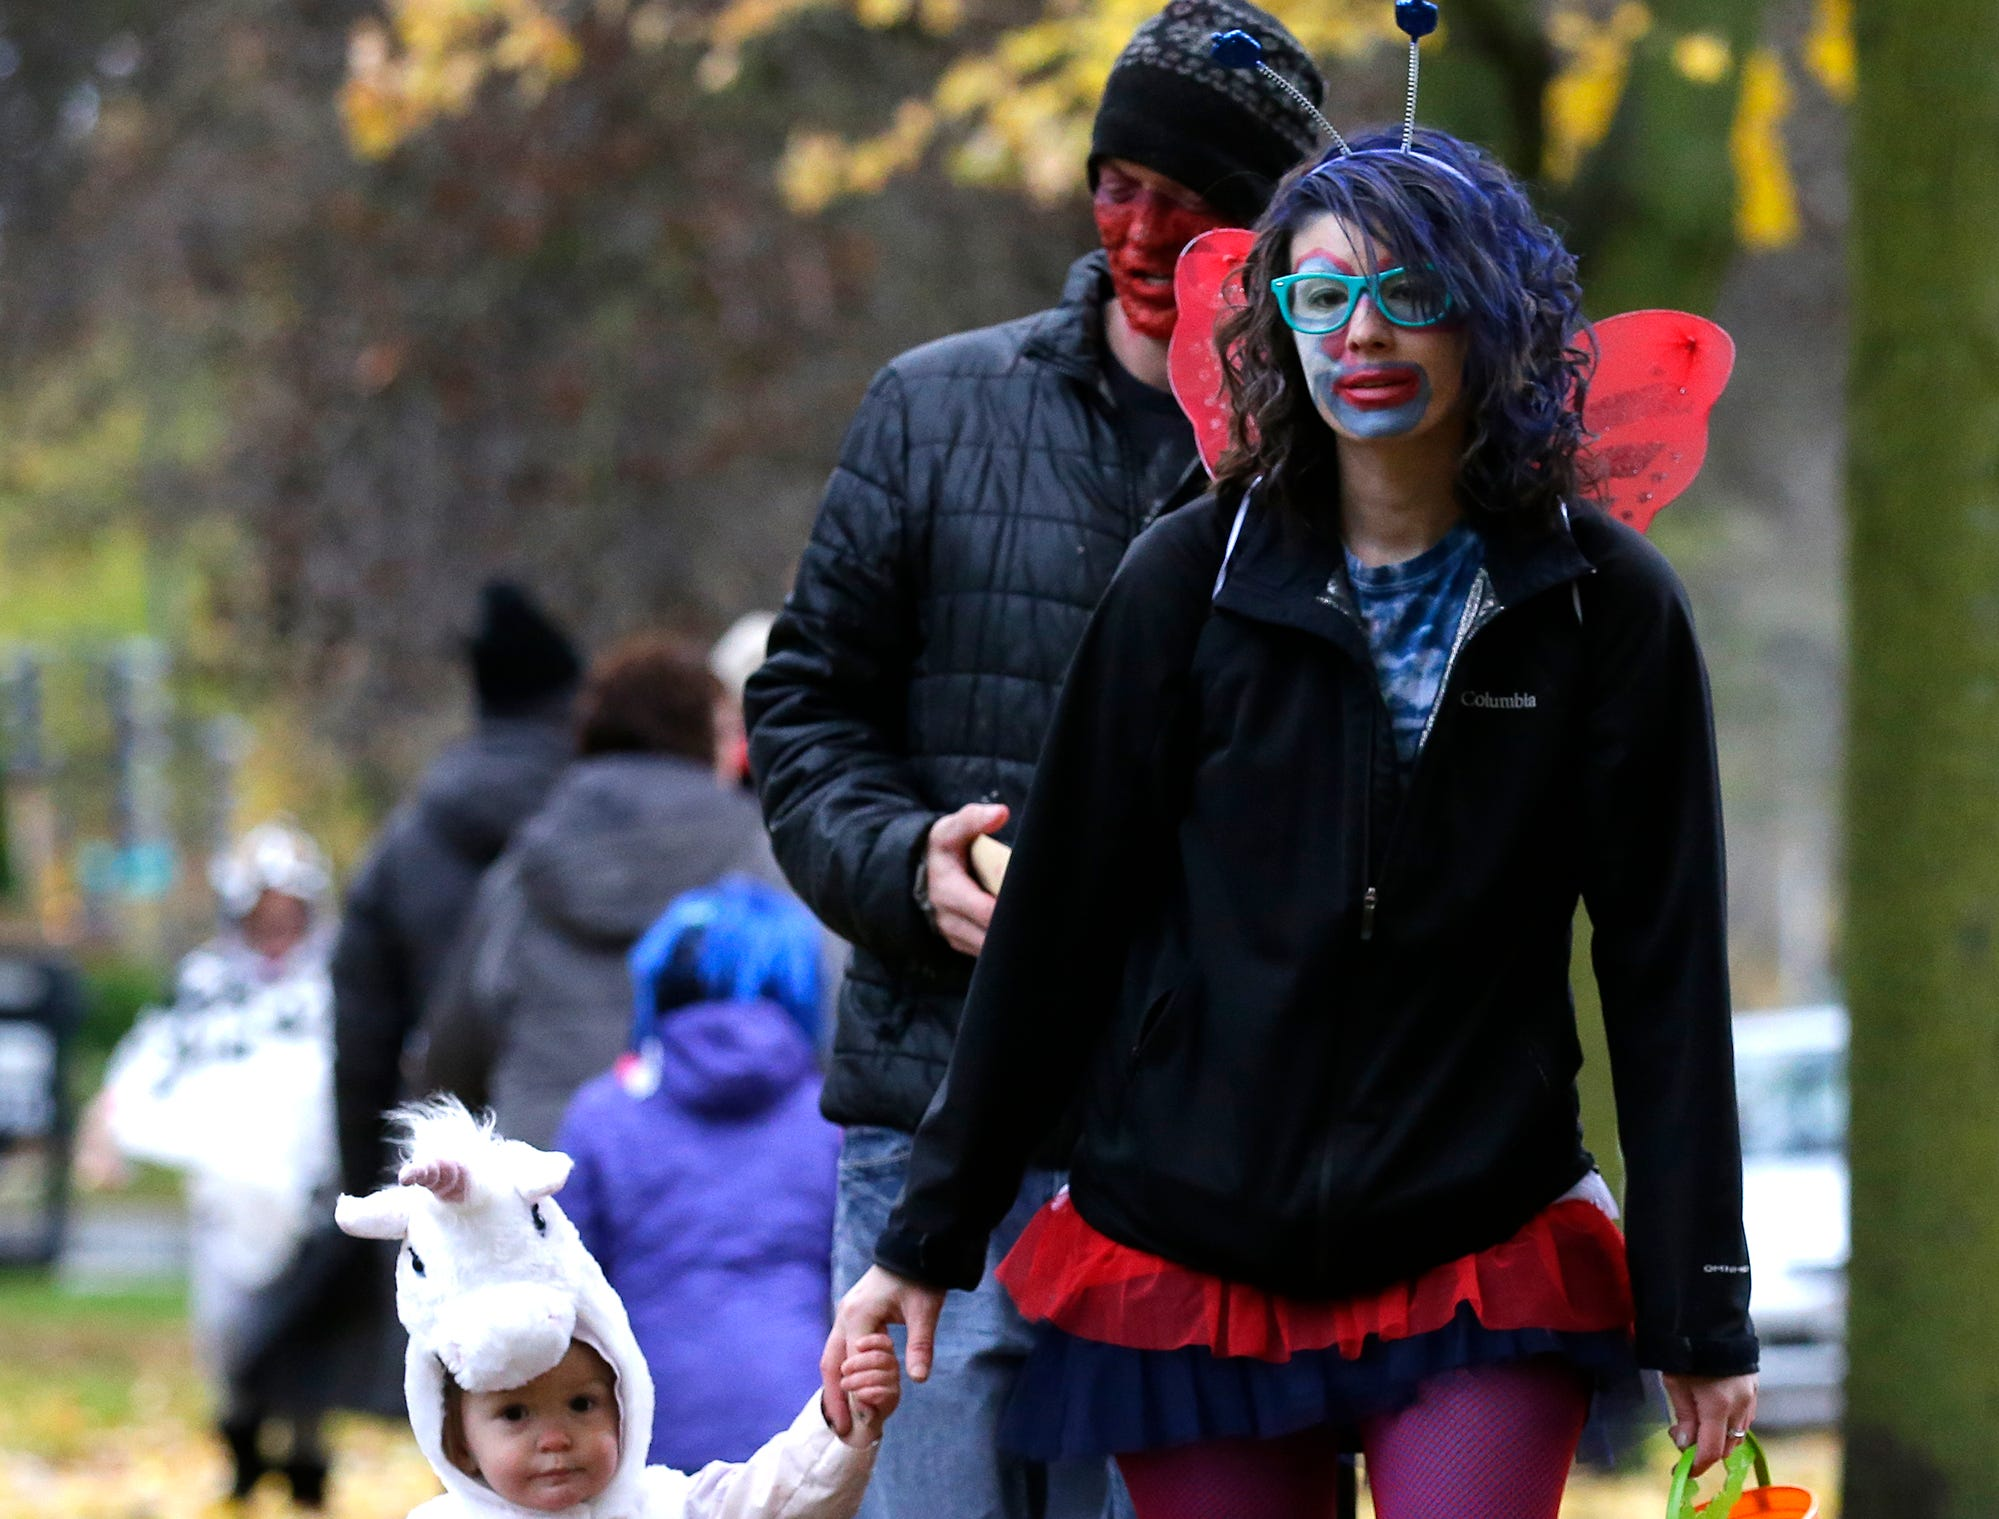 Olivia, James and Ashley Meilahn of Fond du Lac were out trick or treating Sunday, October 28, 2018 in Fond du Lac, Wisconsin. Doug Raflik/USA TODAY NETWORK-Wisconsin